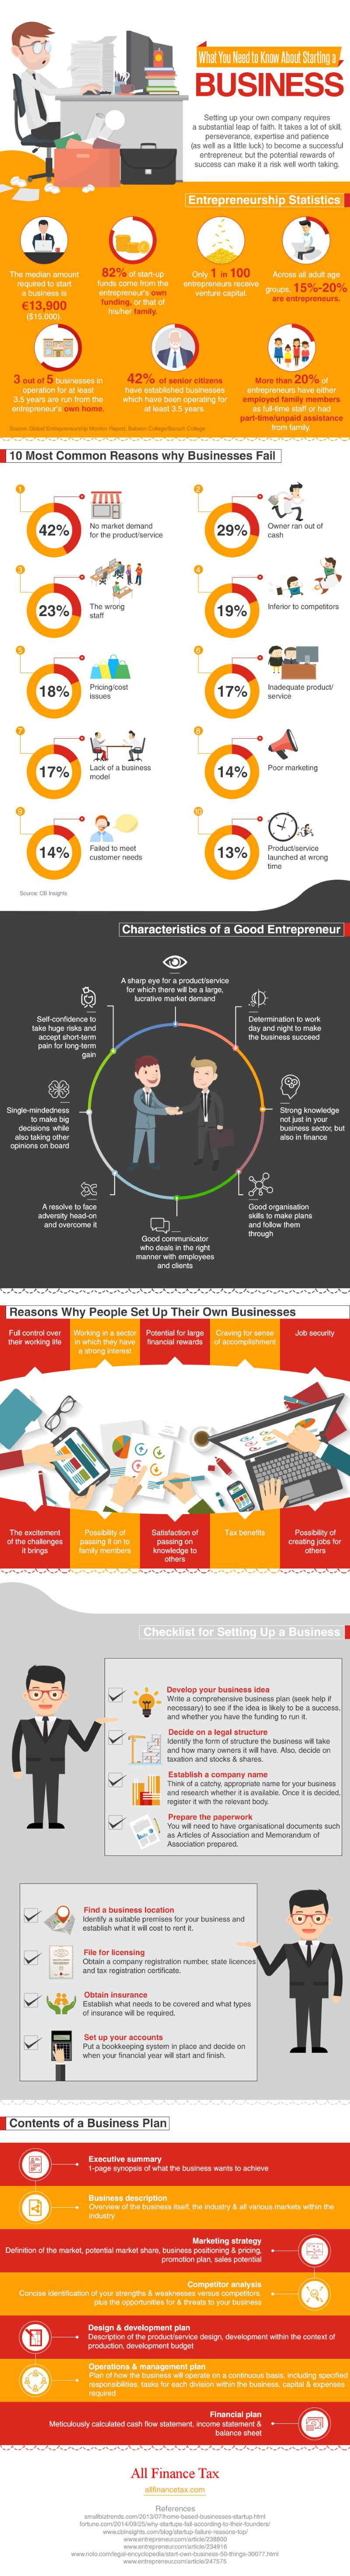 starting-a-business-infographic